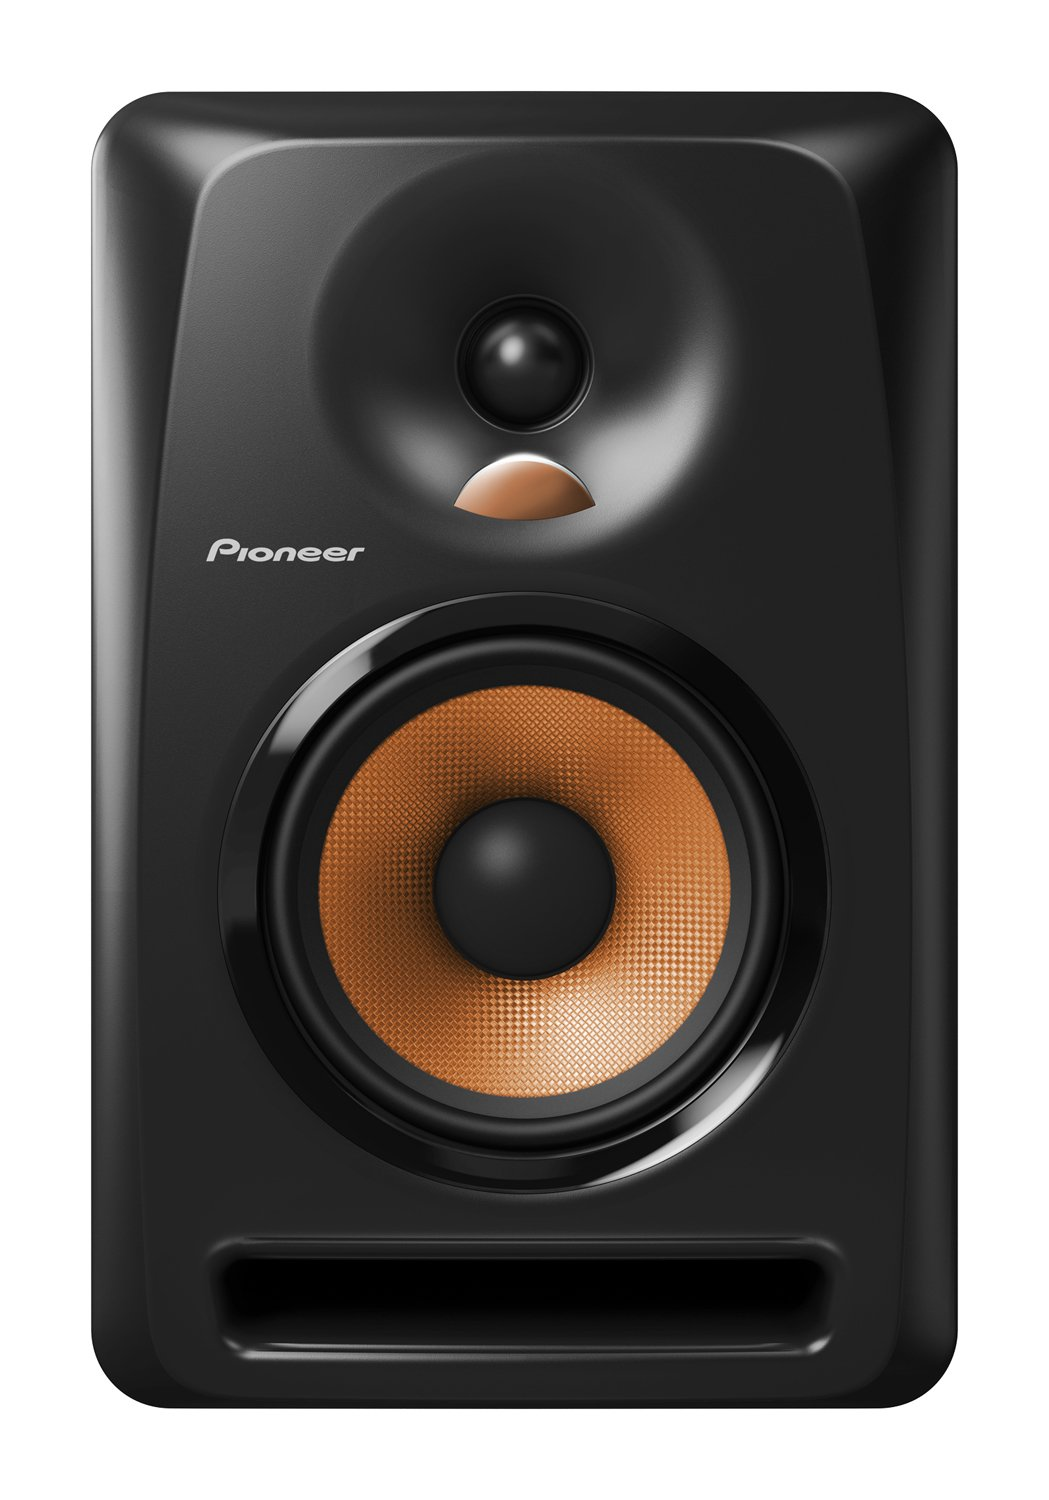 Pioneer Pro DJ BULIT5-Channel Monitor Speaker and Subwoofer Part